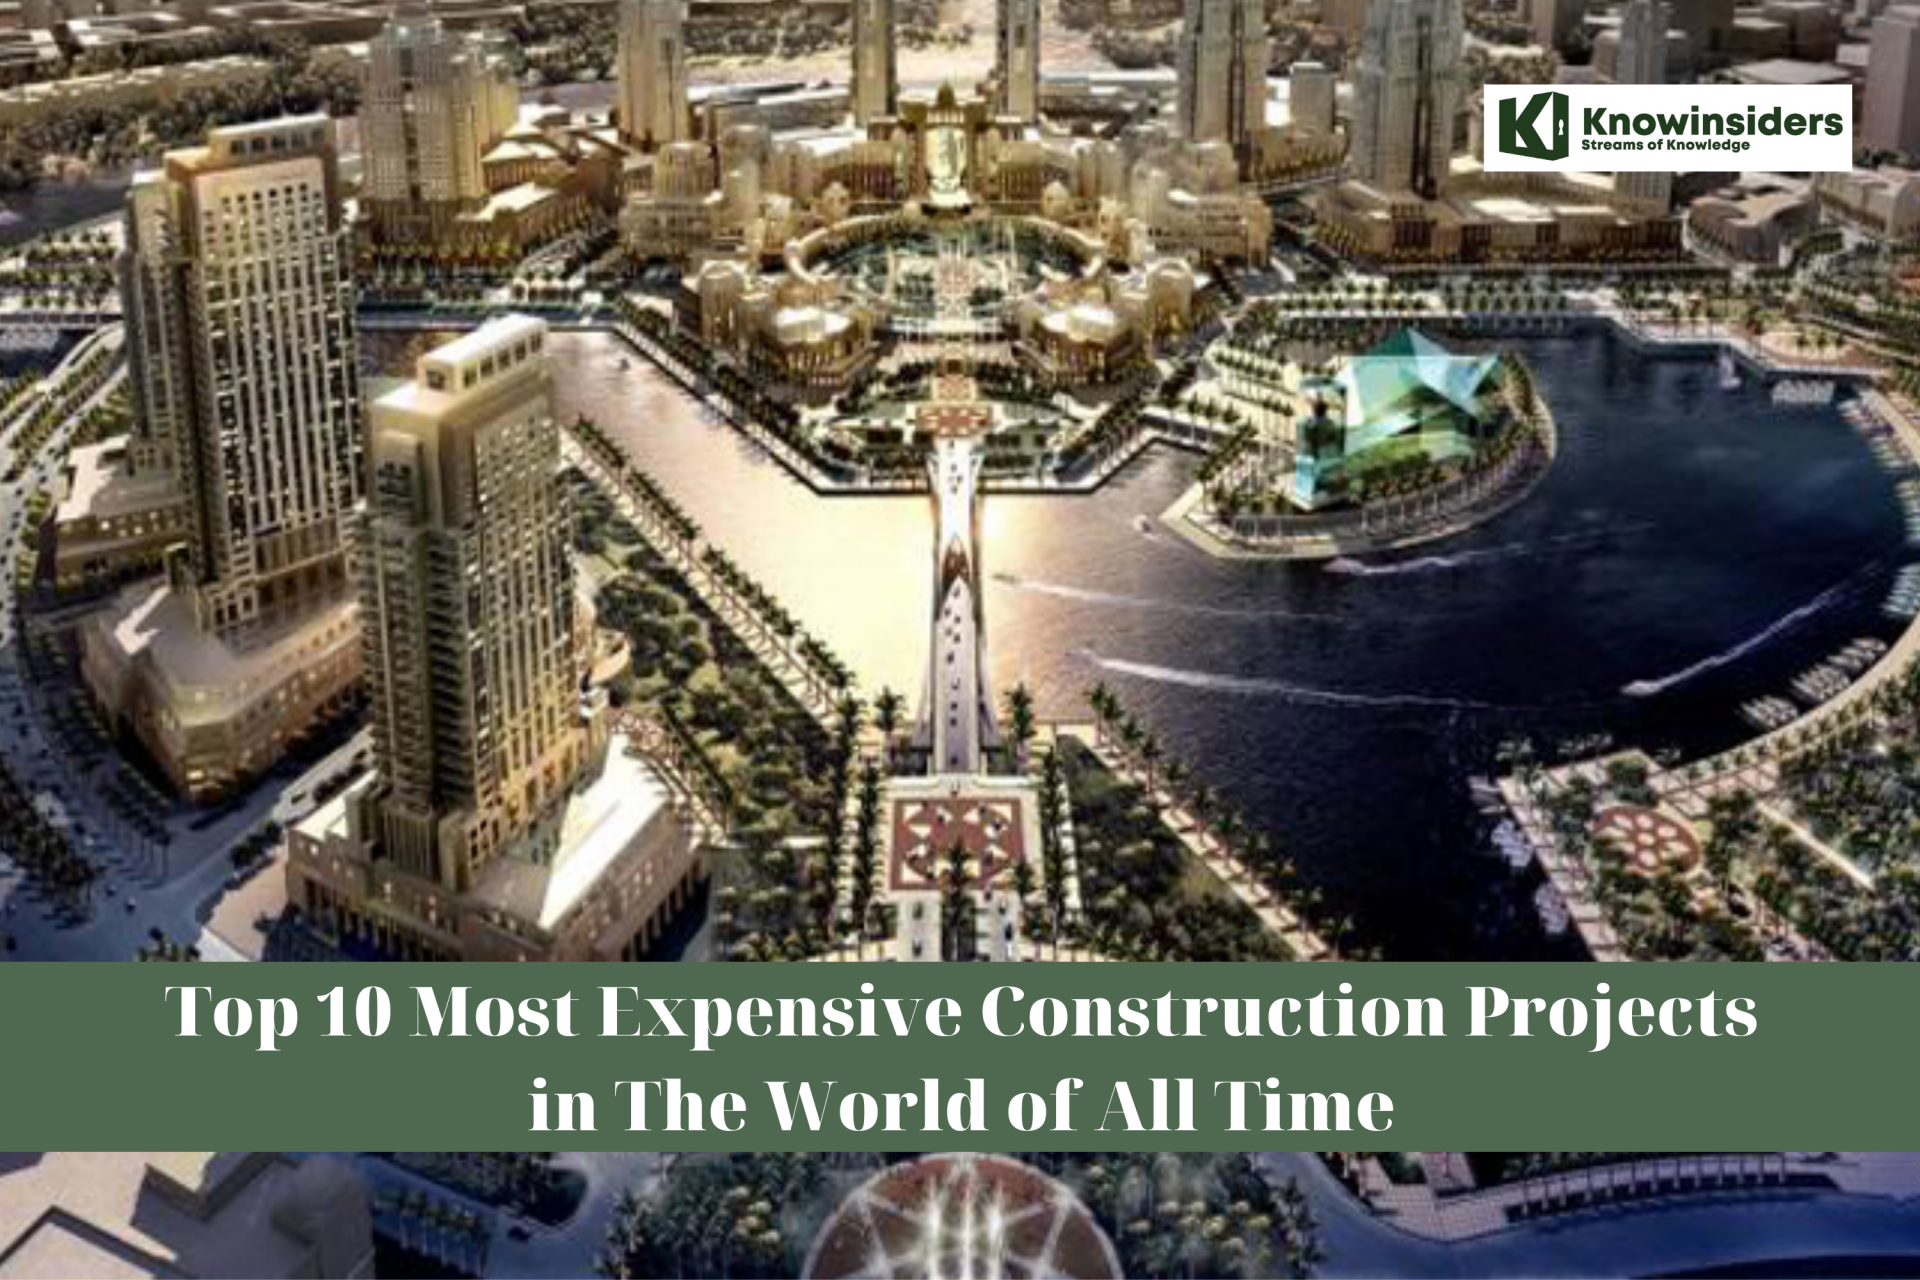 Top 10 Most Expensive Construction Projects in The World of All Time